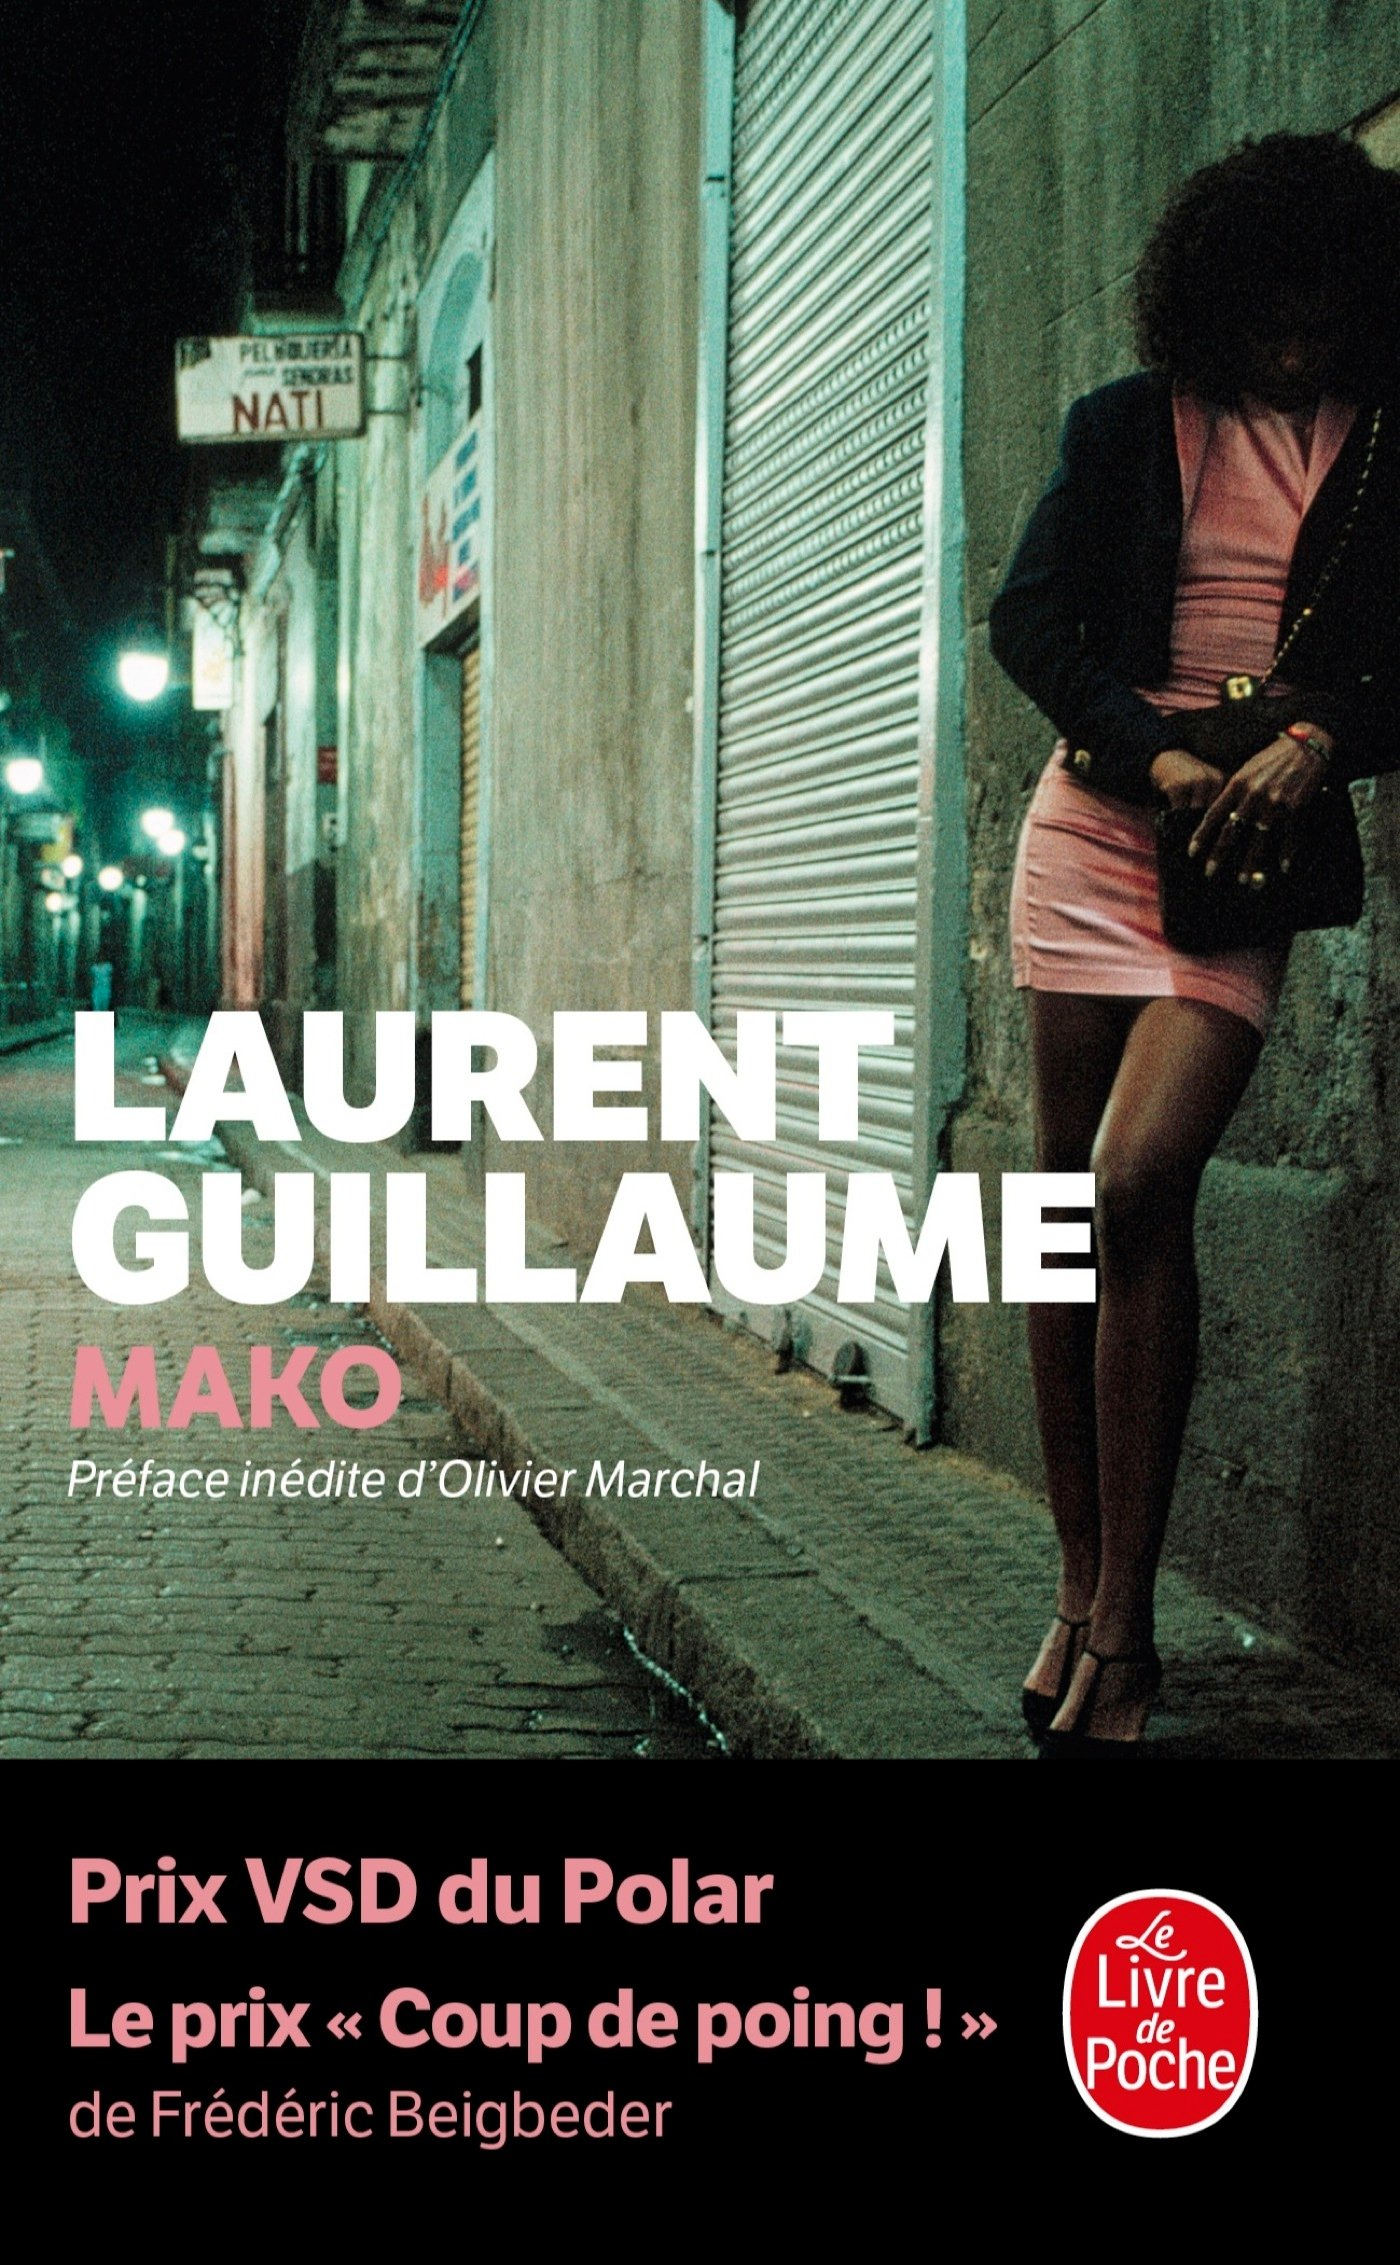 Mako Policier Thriller French Edition Laurent